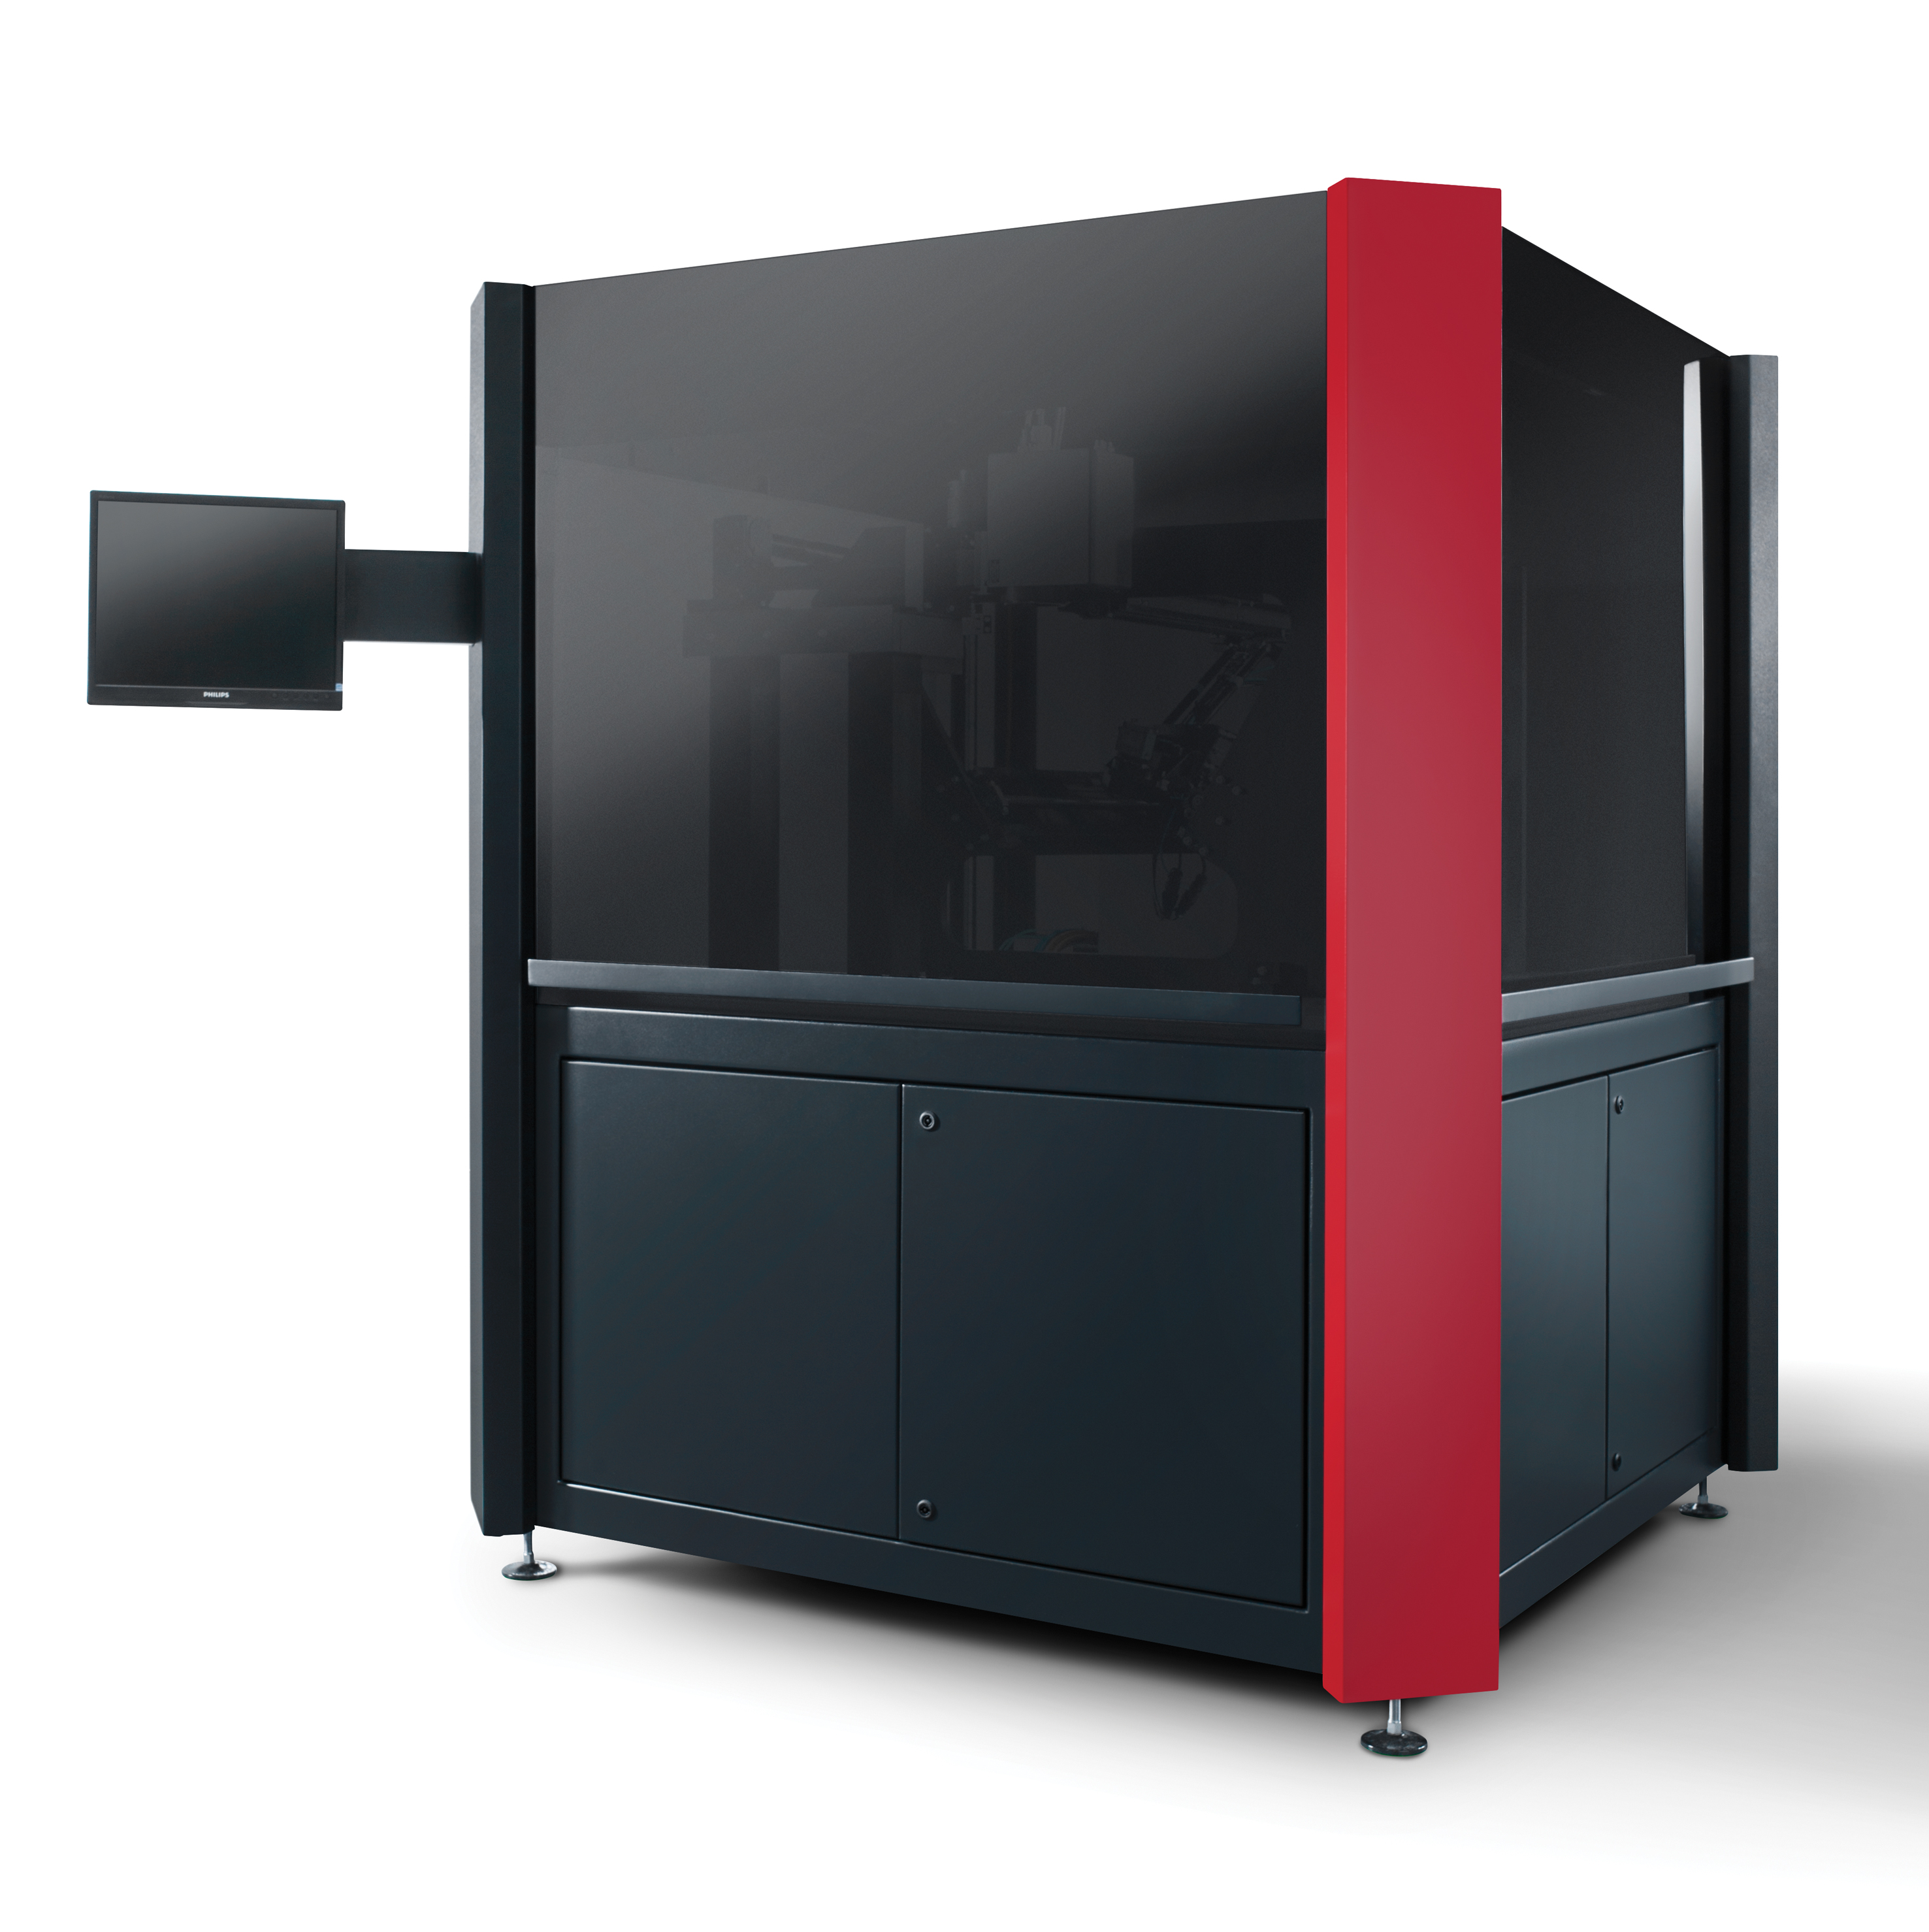 3D Lasersysteme sylas®